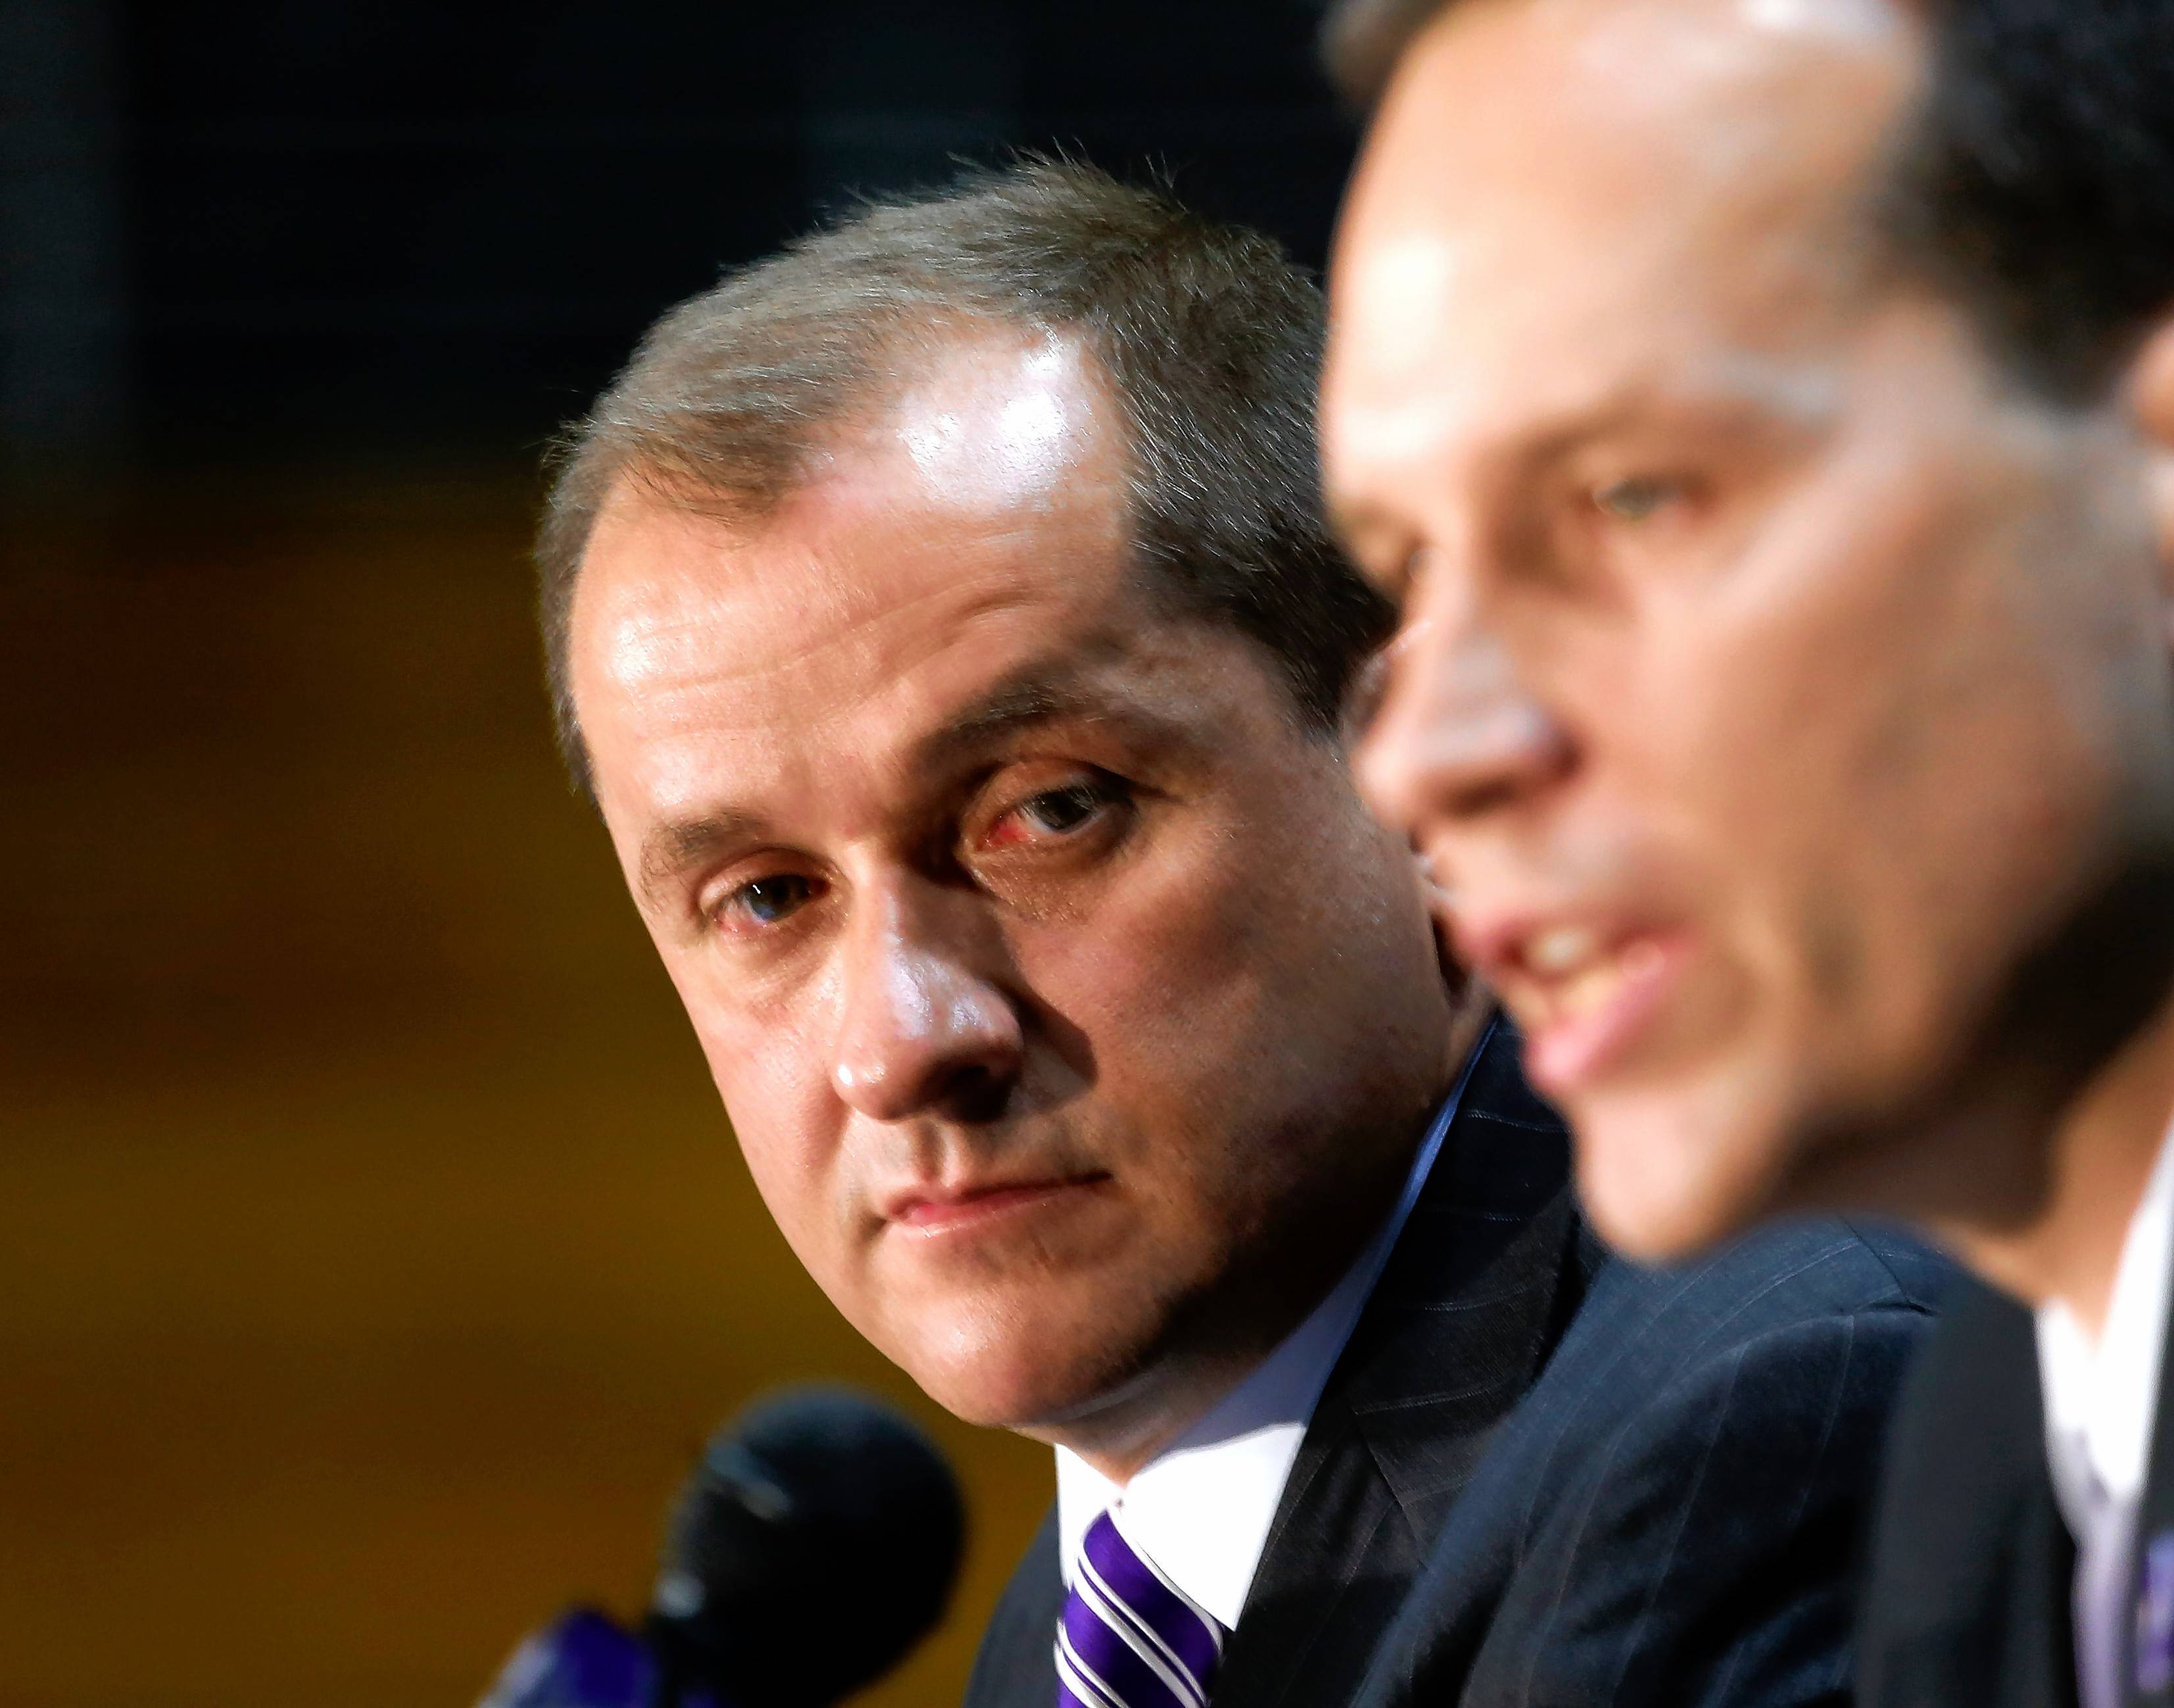 Jim Phillips, left, now the athletics director at Northwestern University, says he'll never forget the give students killed on the Northern Illinois University campus 10 years ago when he worked there. He plans to attend this week's memorial.